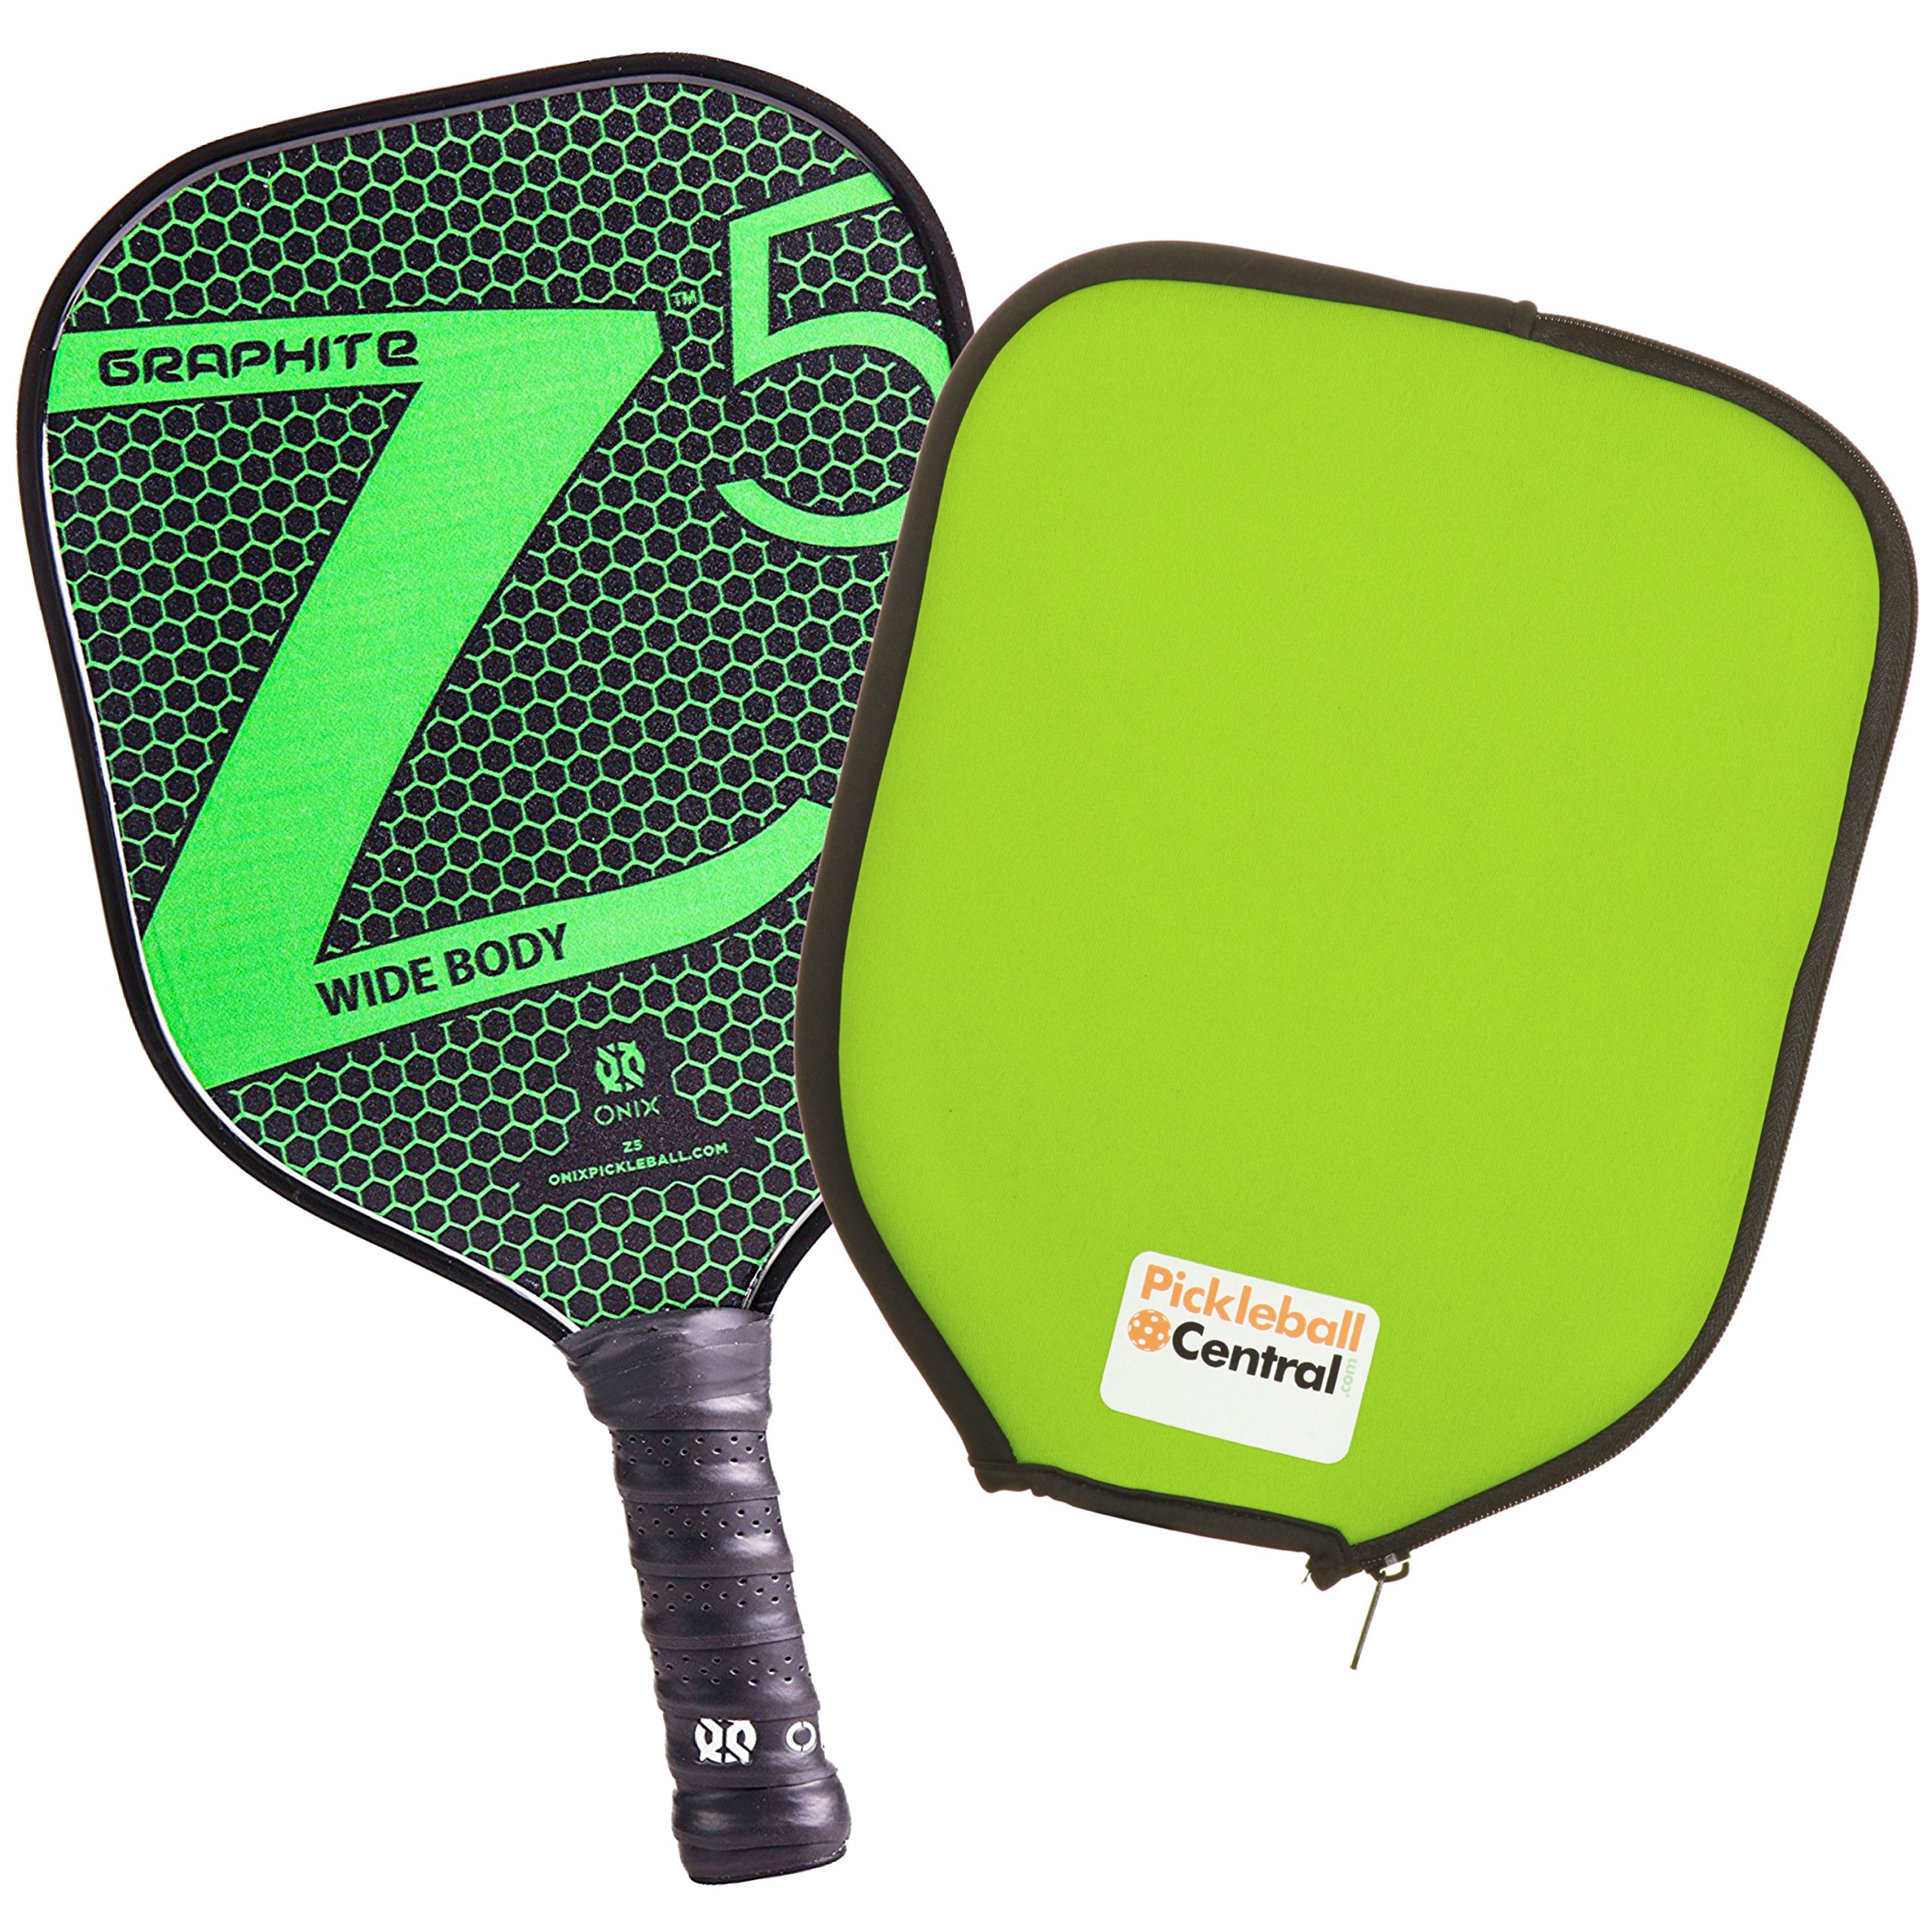 Onix Z5 Graphite Pickleball Paddle and Paddle Cover (Green) by Onix (Image #1)